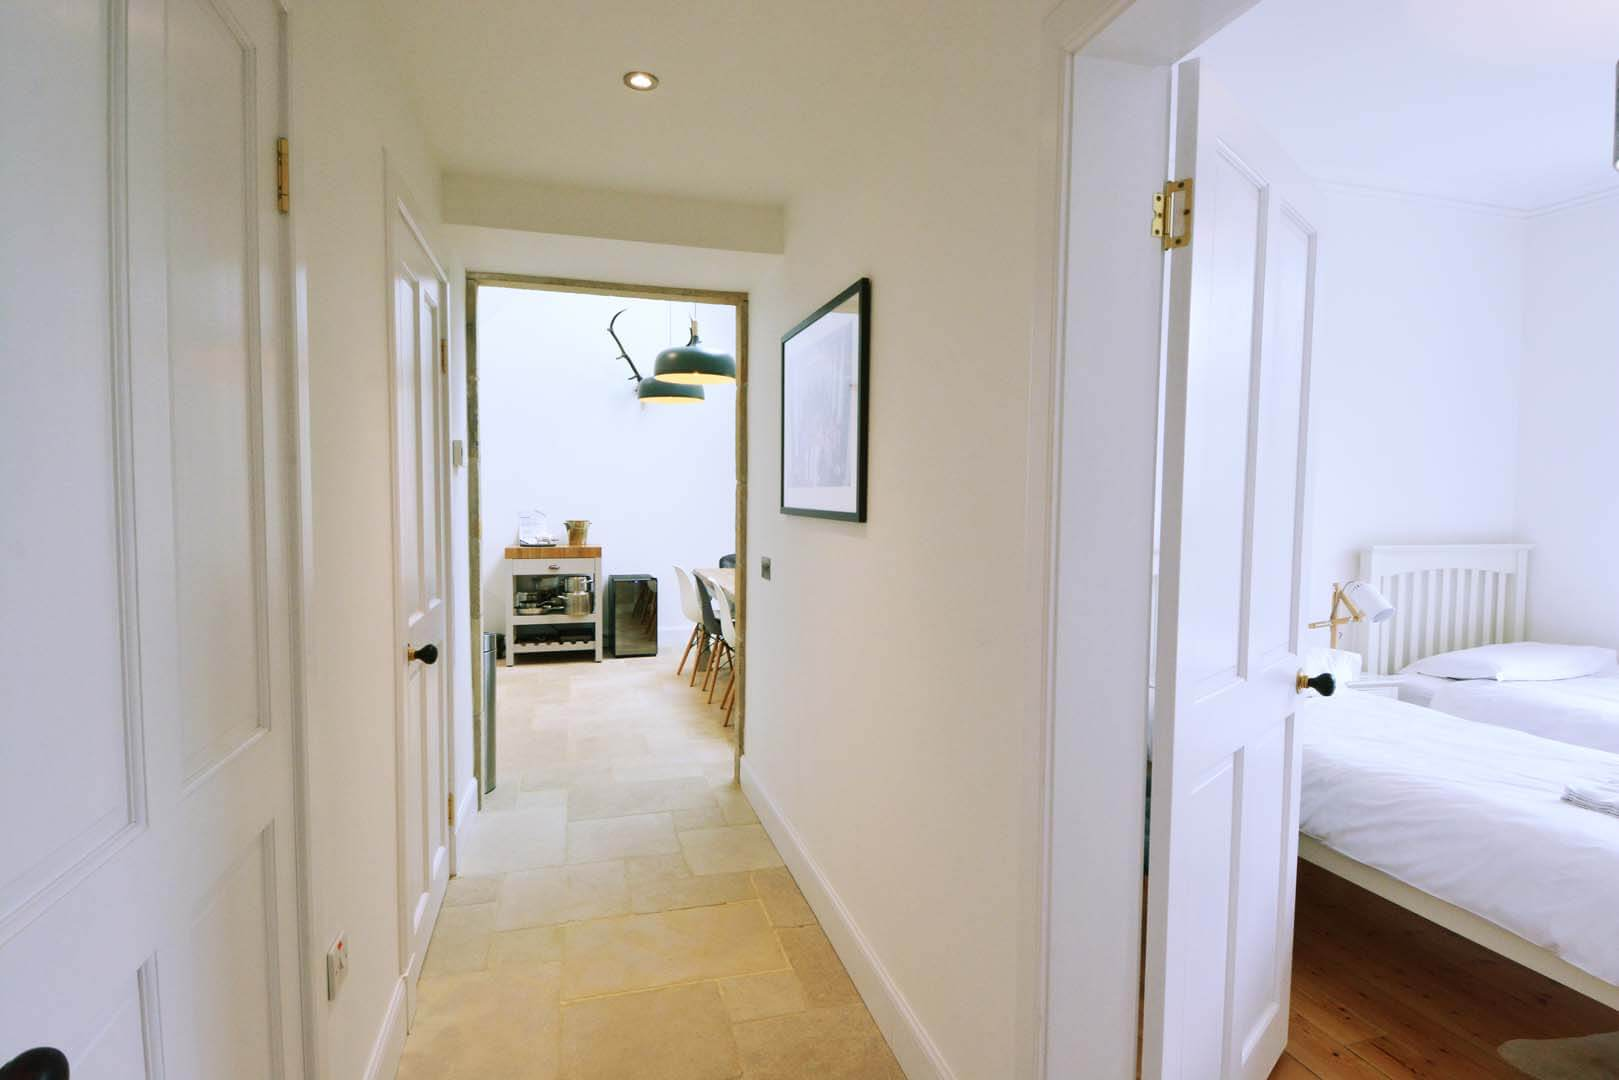 Refurb and Extension Traditional Cottage Hallway looking into Double bedroom and Kitchen